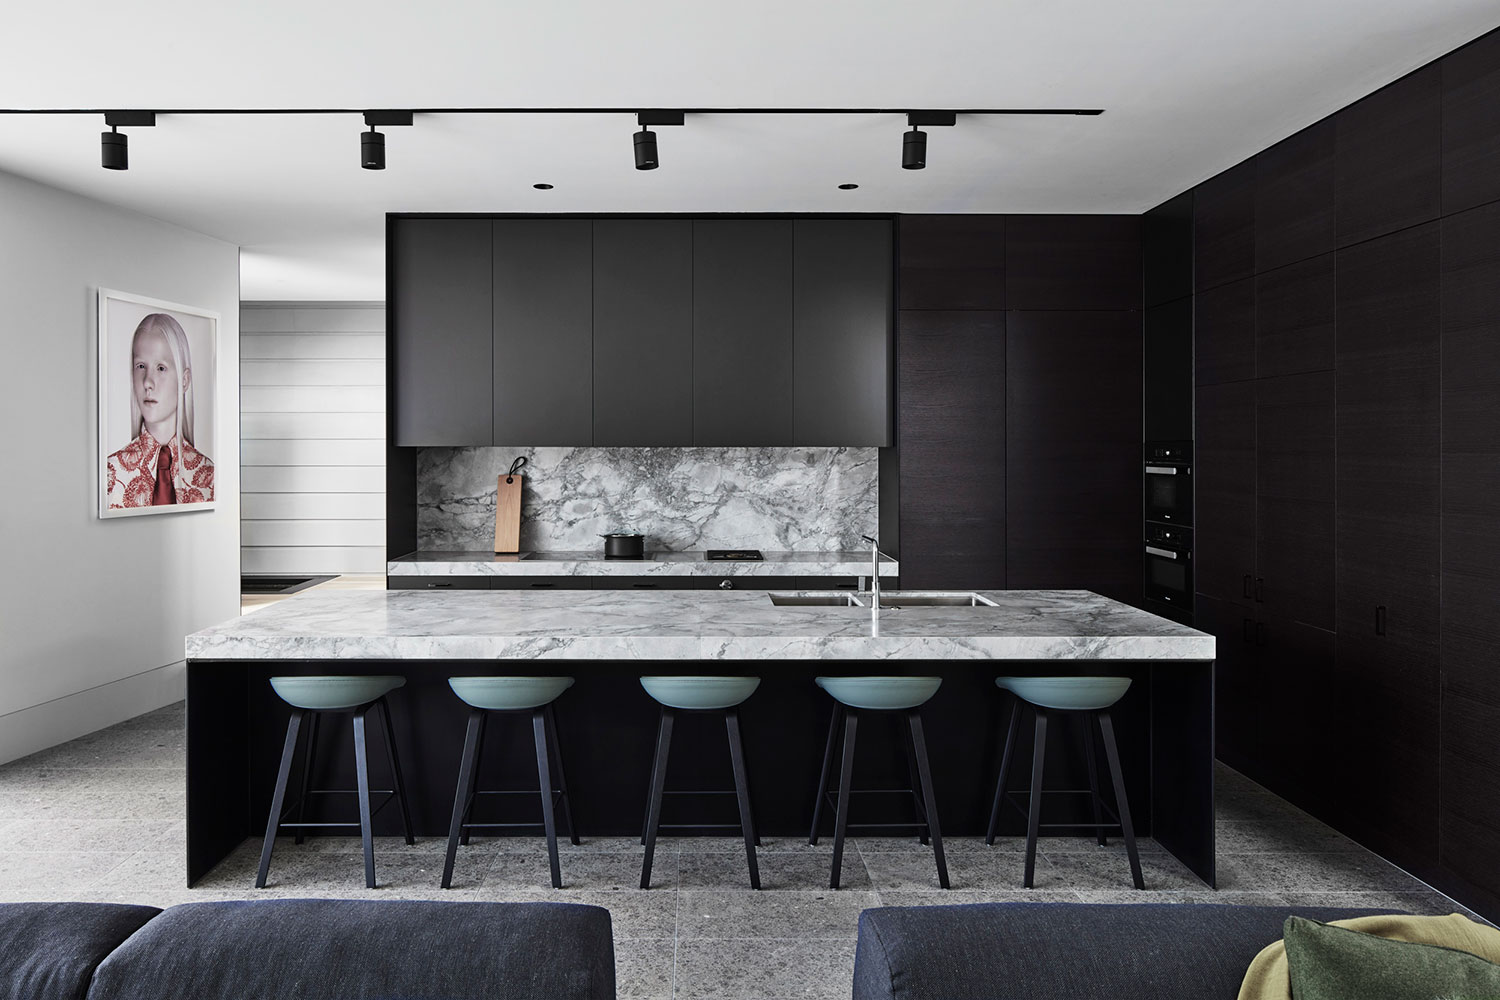 New open plan kitchen with black steel detailing